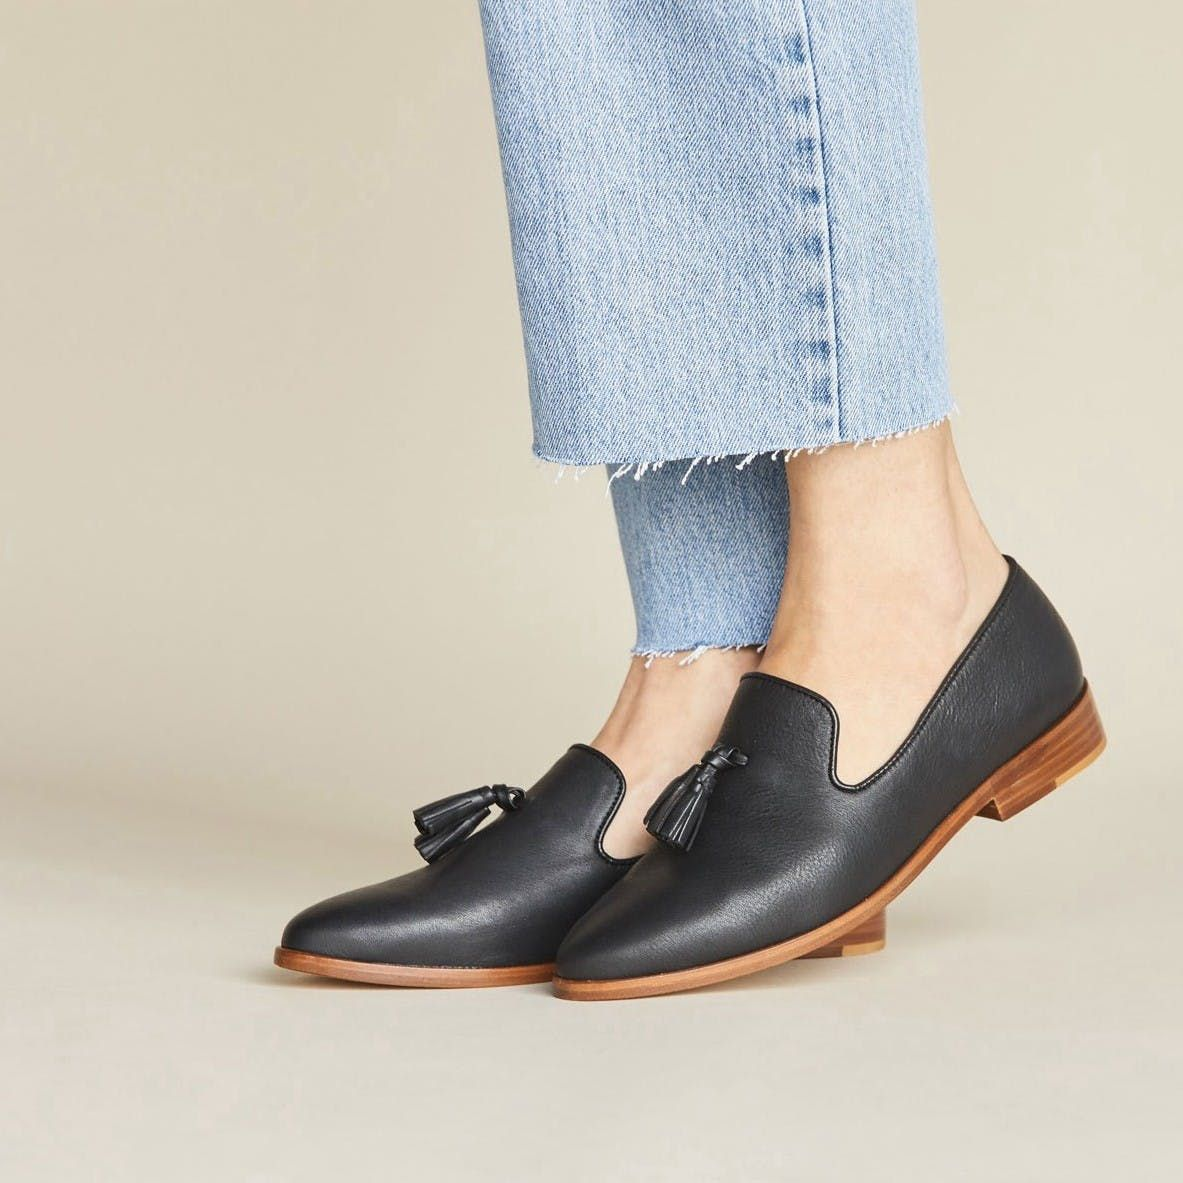 Frida Loafer Black By Nisolo Loafers Black Loafers Shoes